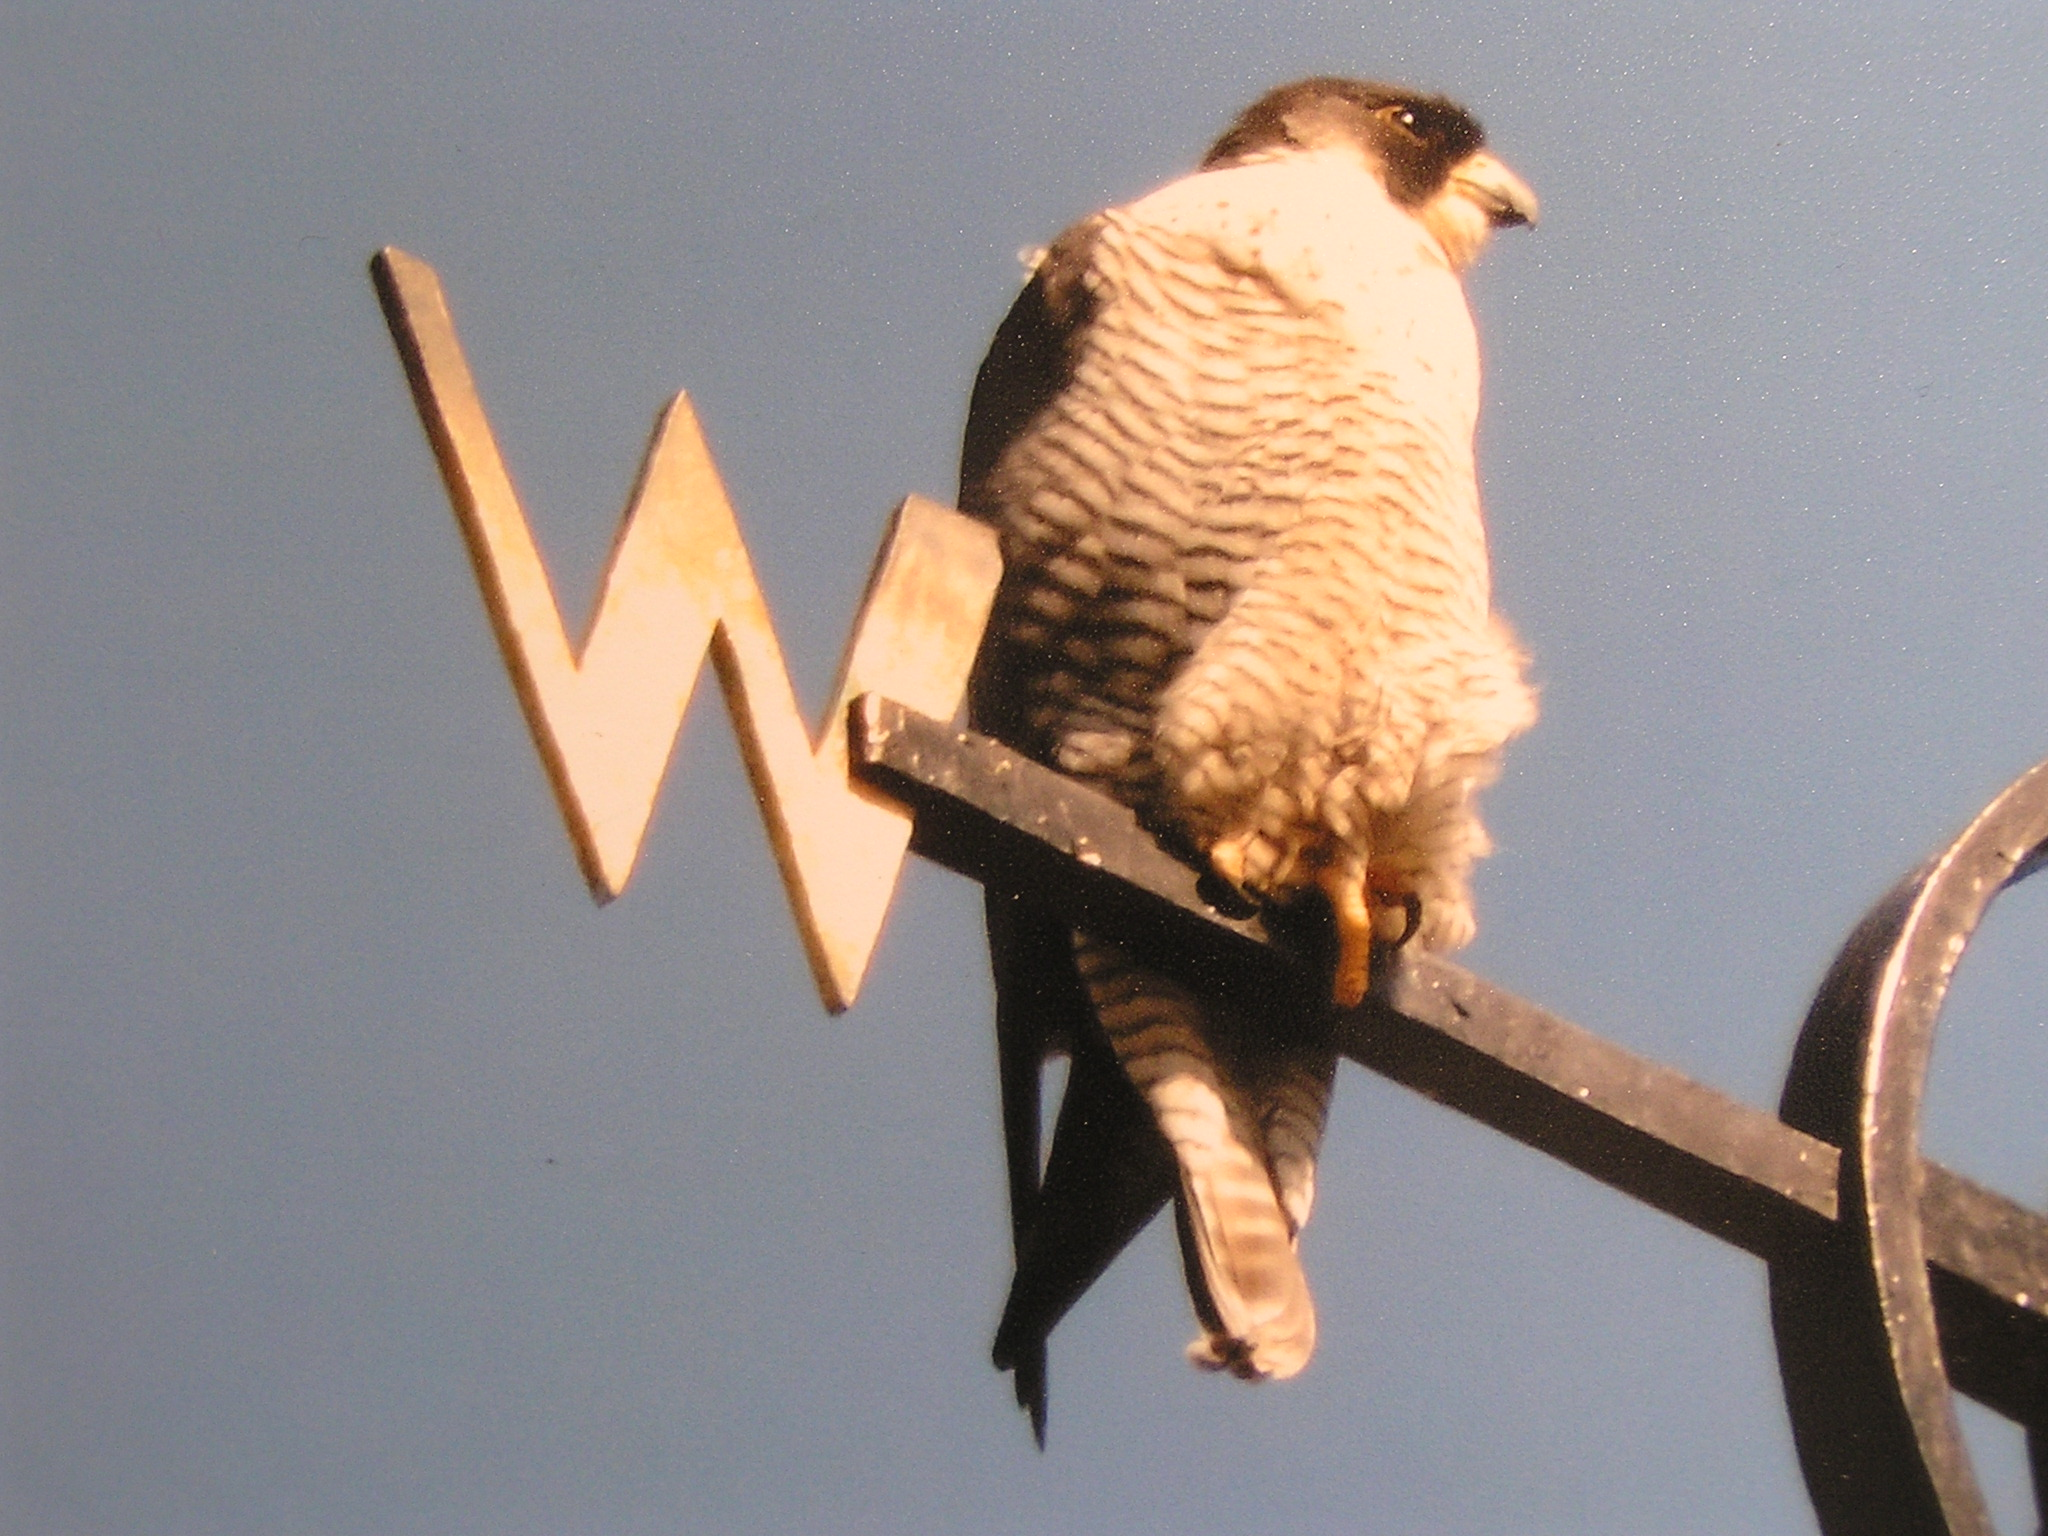 Peregrine falcons are nesting at sites in Morden, Sutton and Kingston